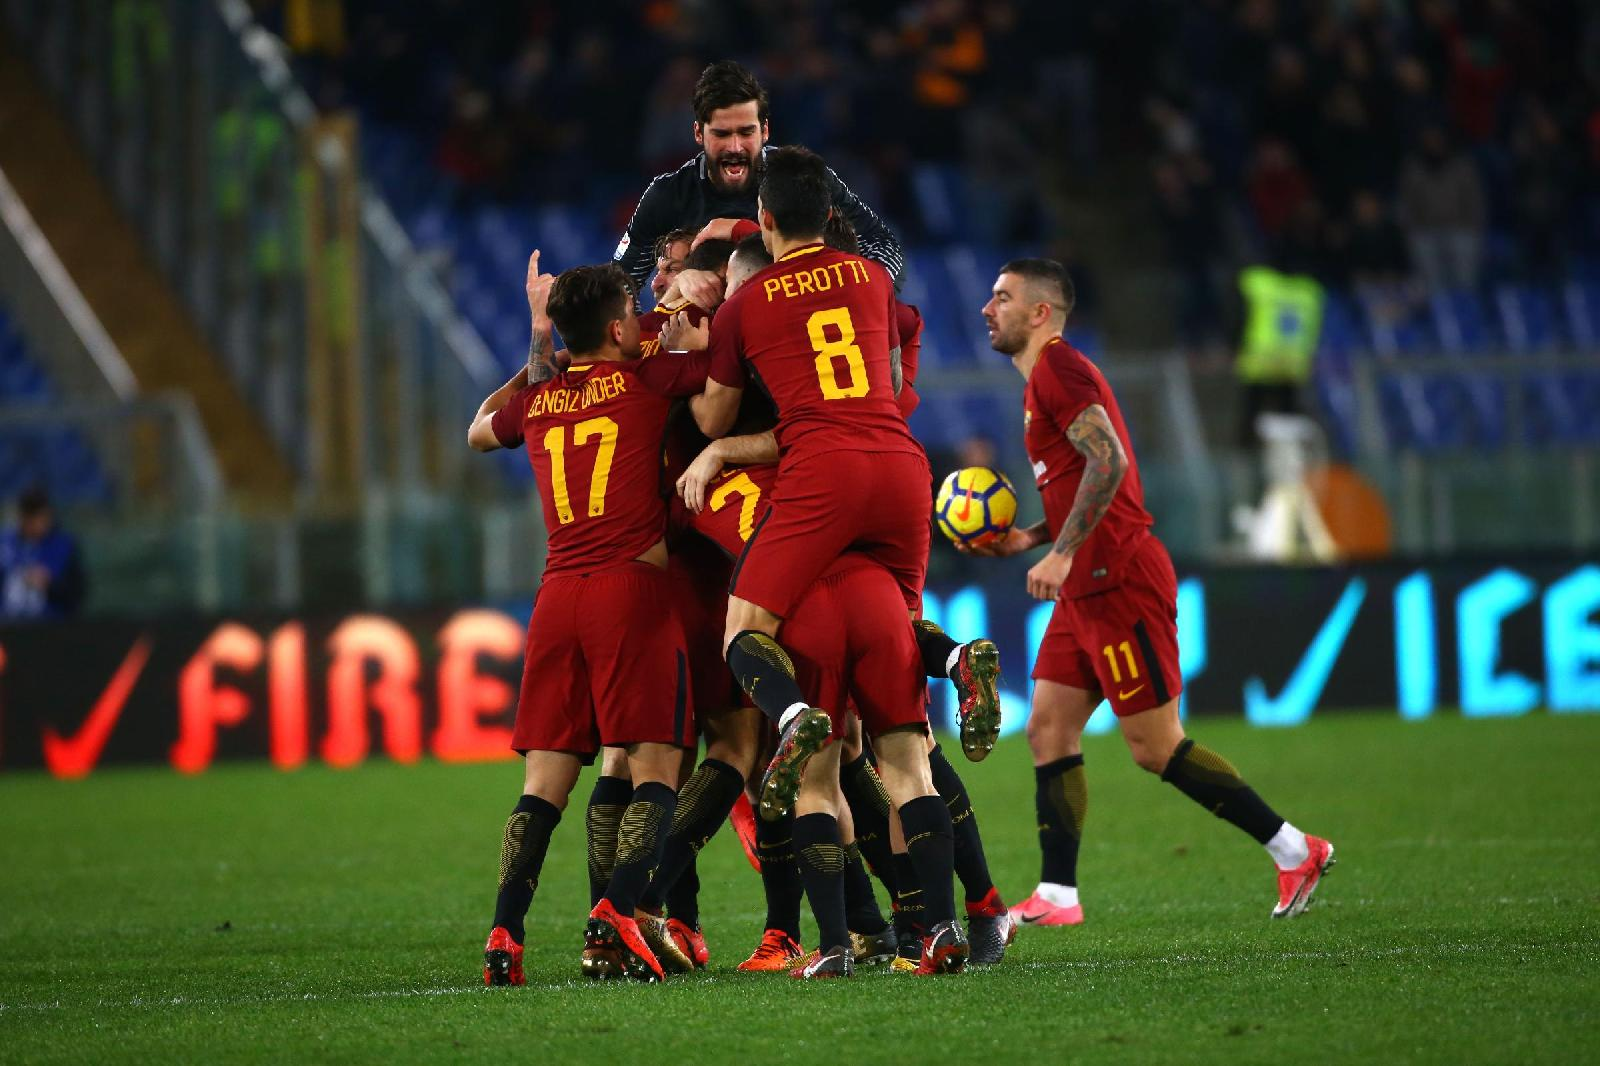 Verso Roma-Torino di Coppa Italia: turnover the top